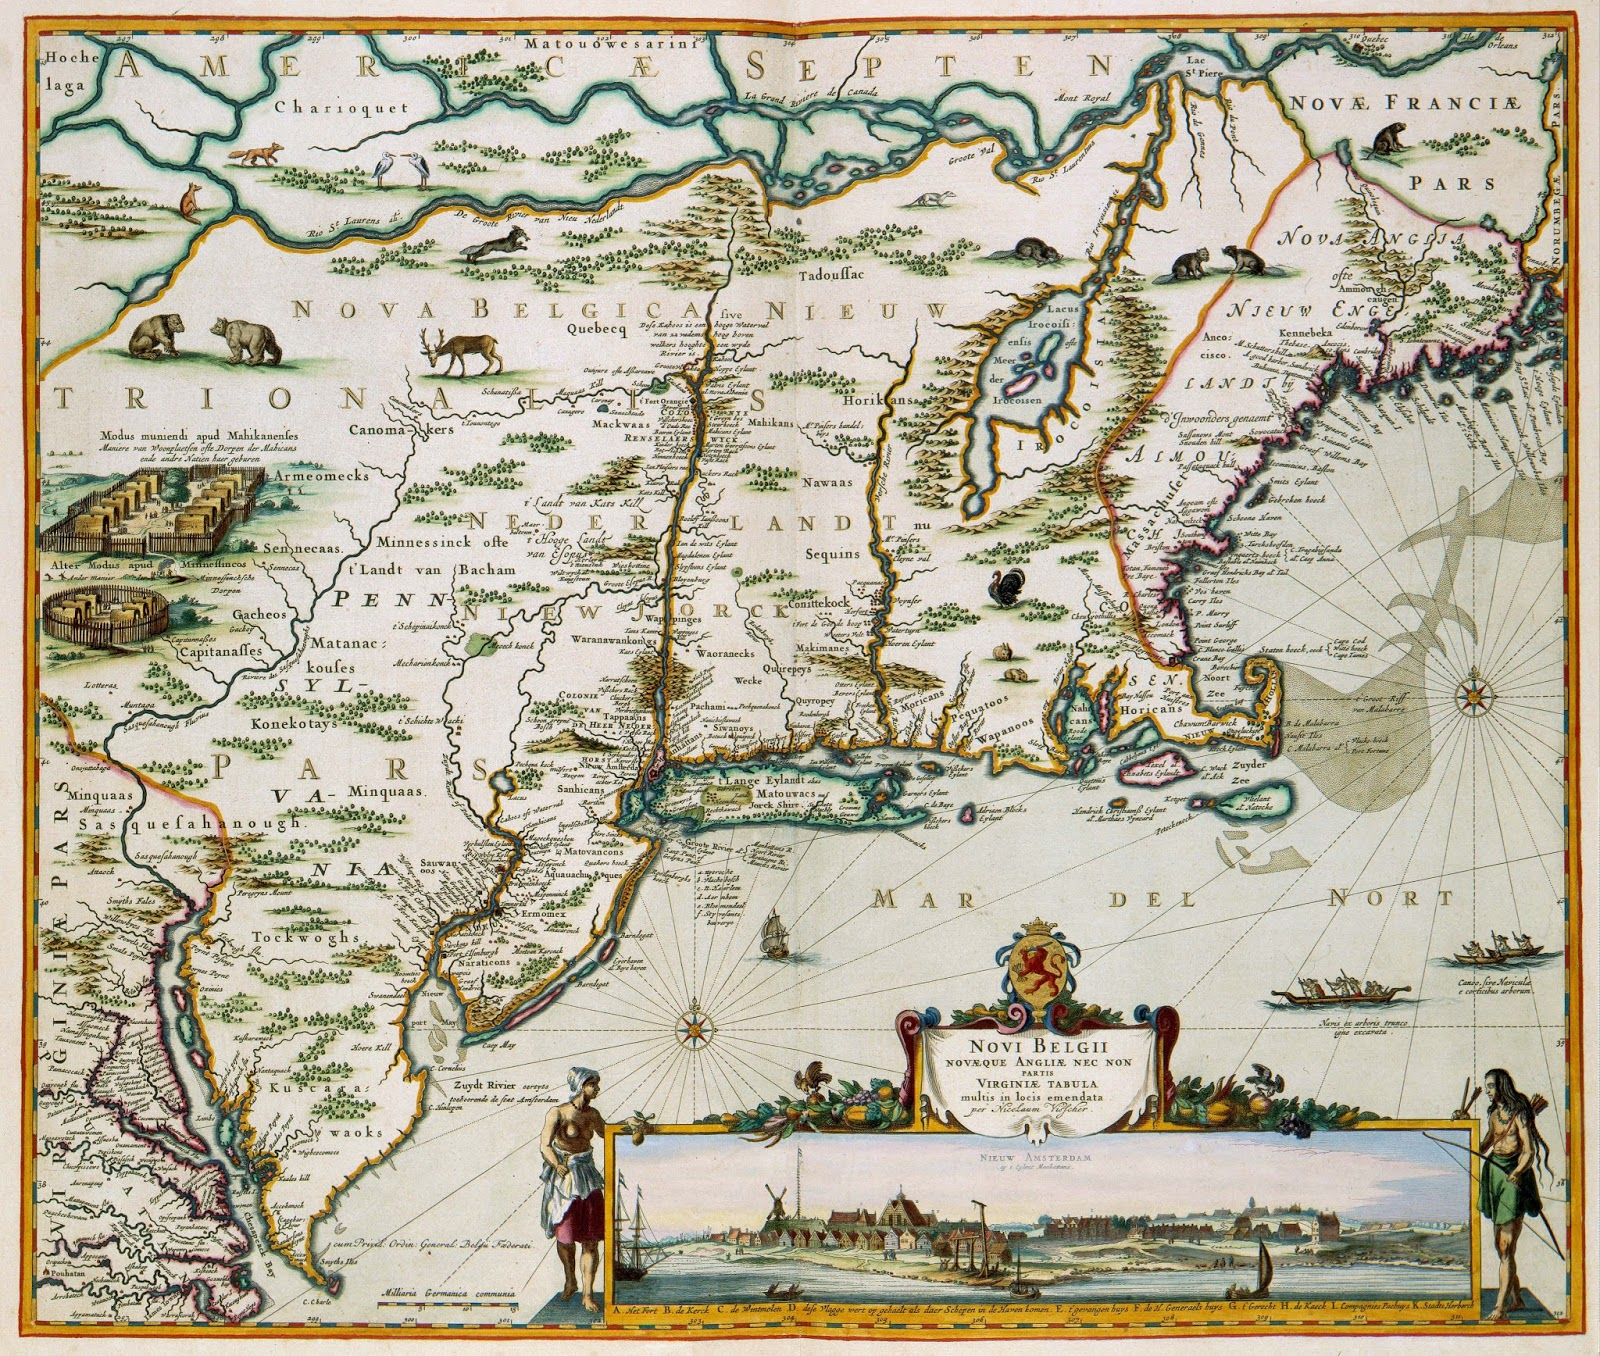 New Netherland, by Nicolaas Visscher II (1684)